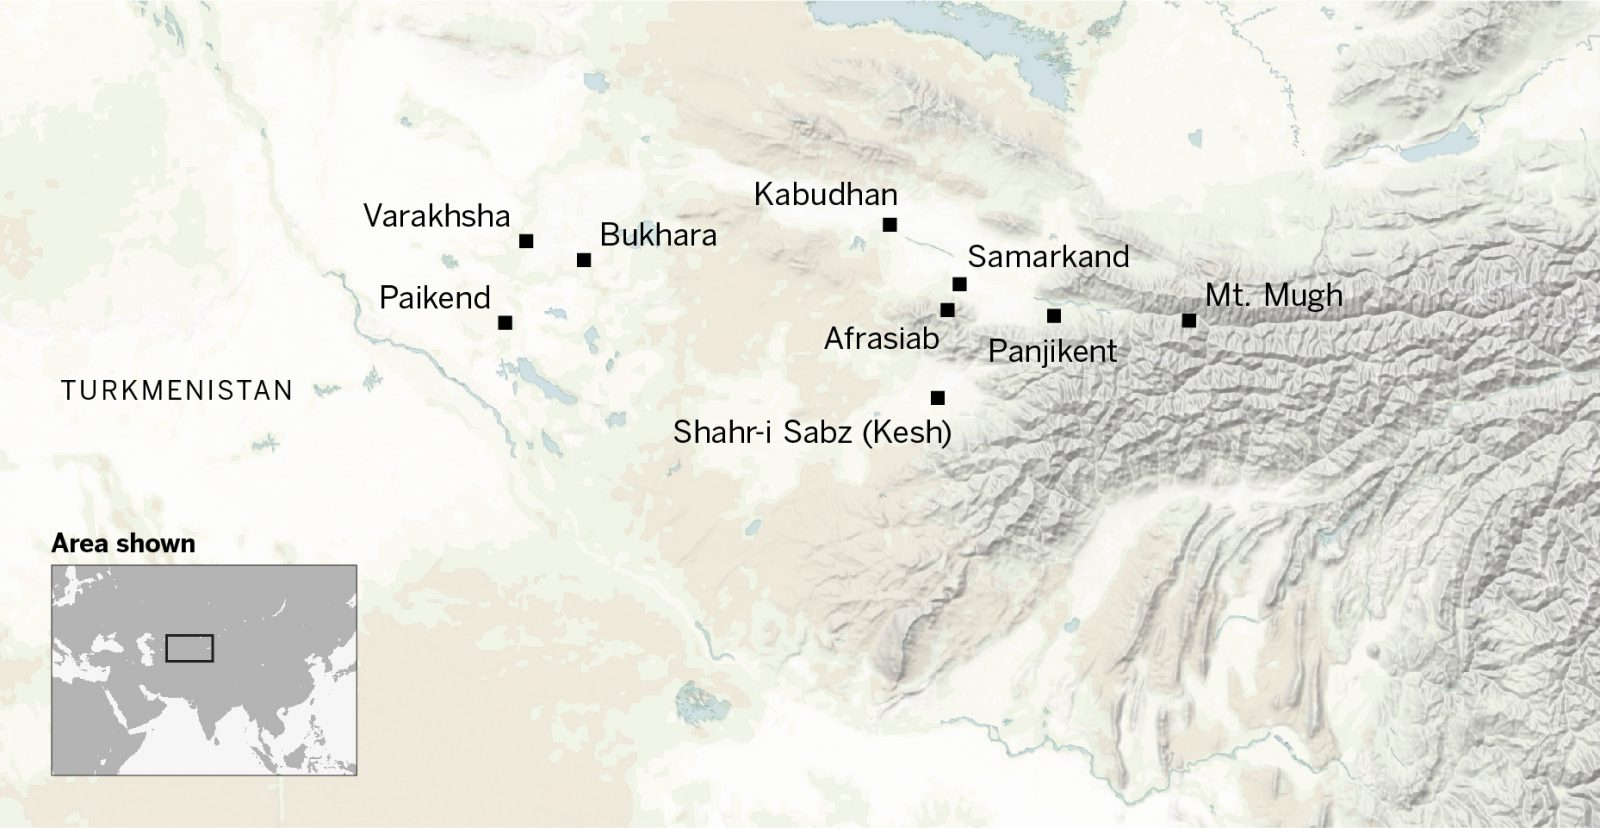 This map shows major Sogdian cities, such as Varakhsha, Bukhara, Afrasiab, Samarkand, Panjikent and Mt Mugh.